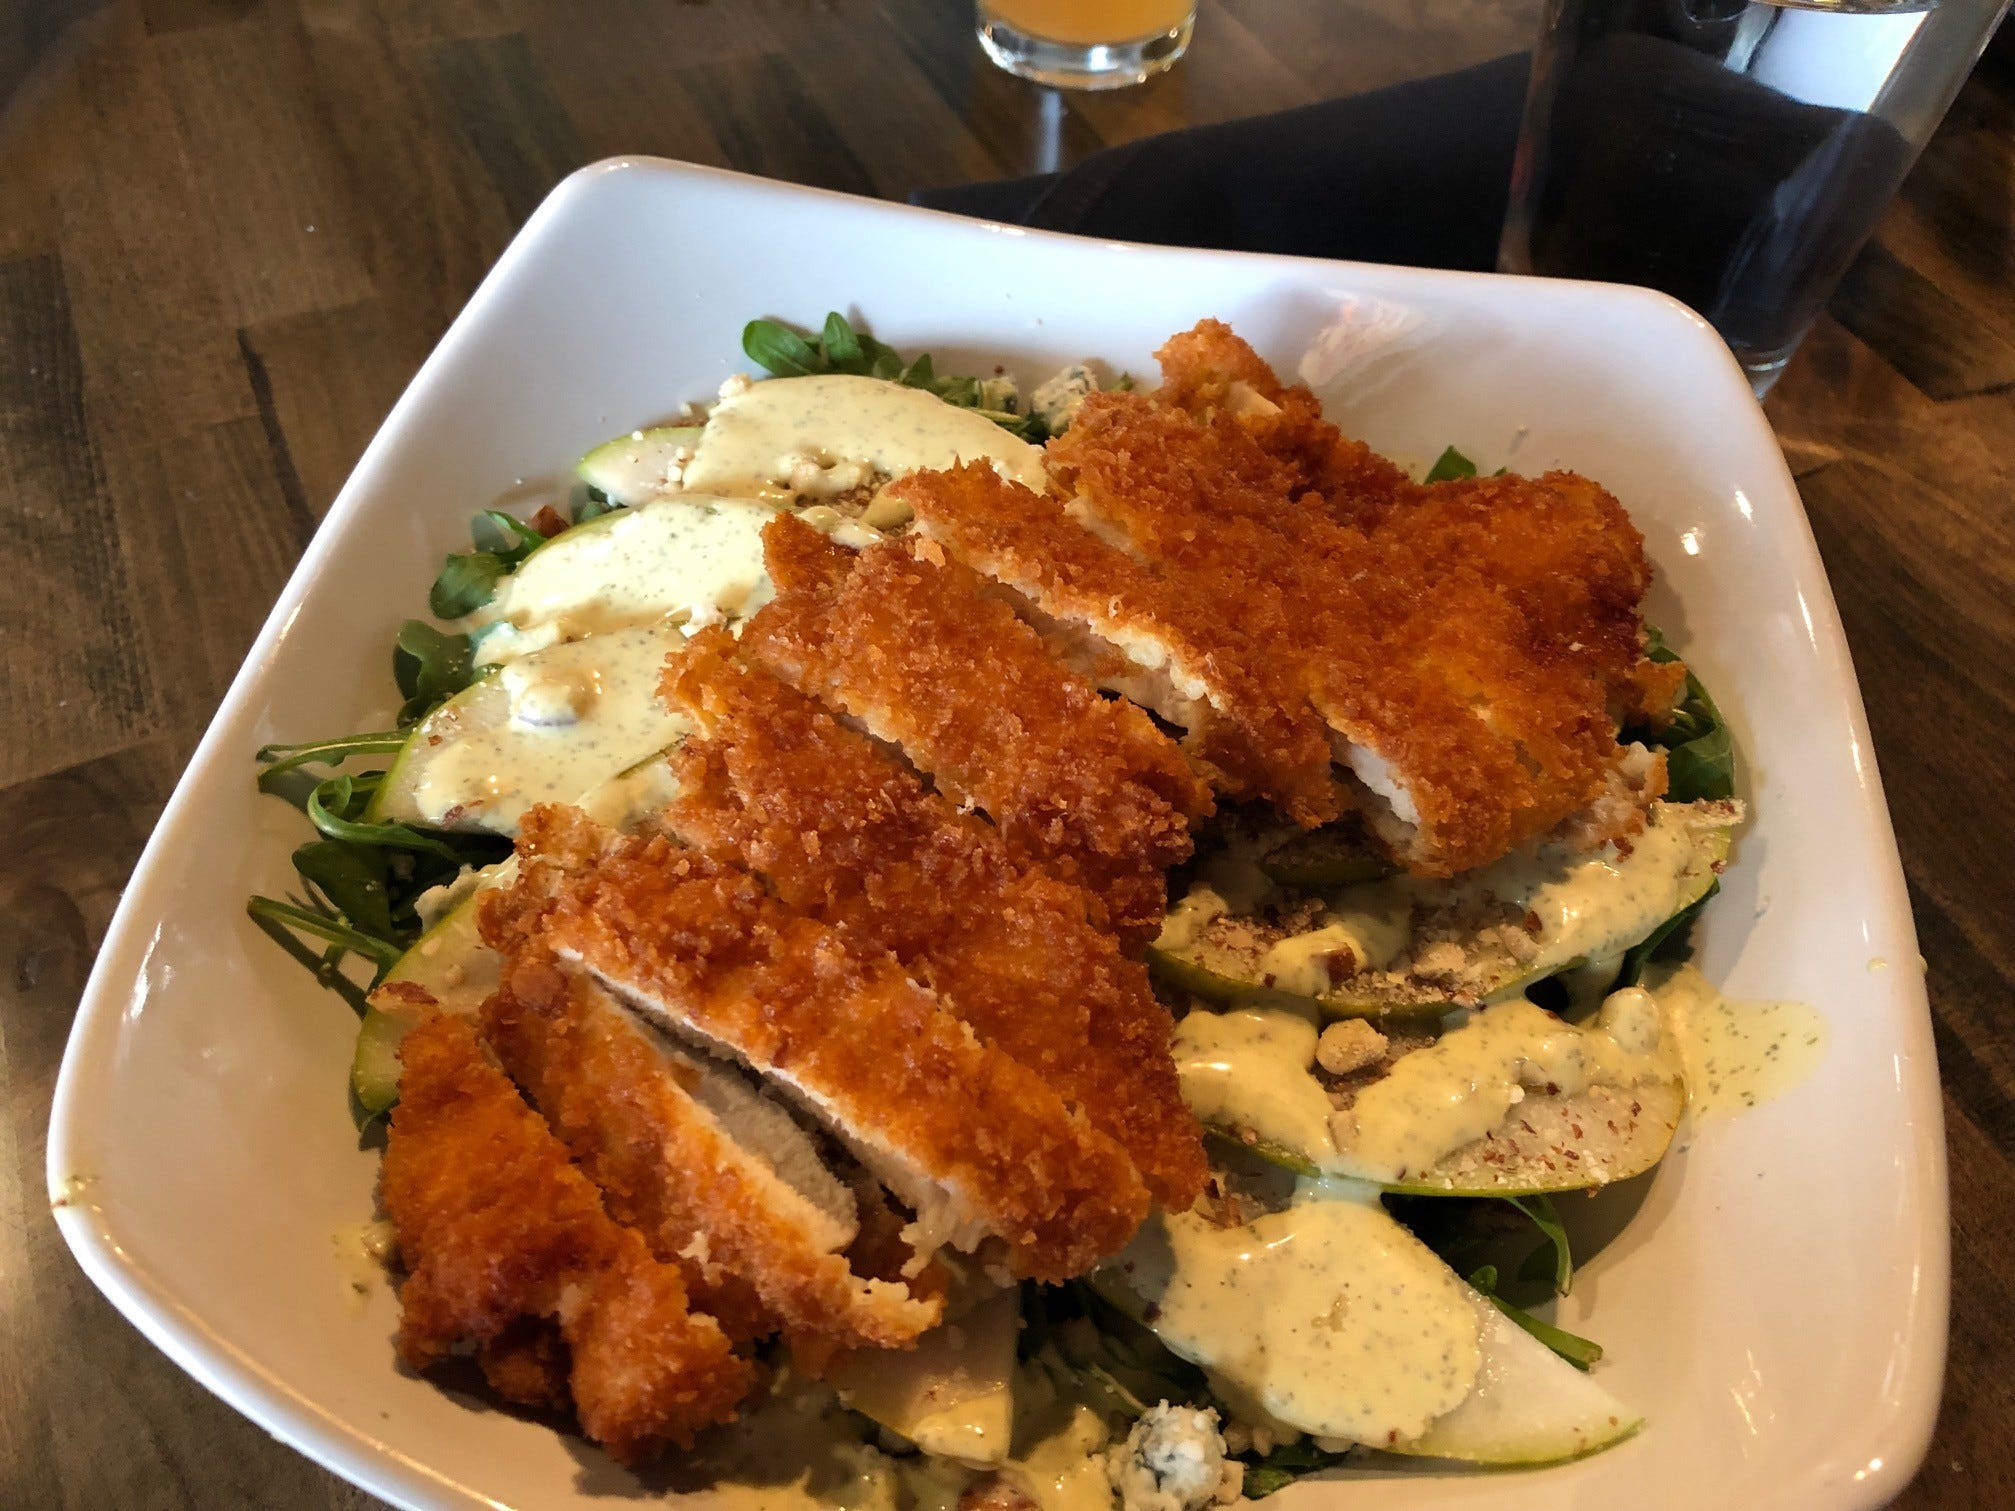 In February 2019, the Gorgonzola pear & chicken salad on the brunch and lunch menu is seen at Vintage Public House.